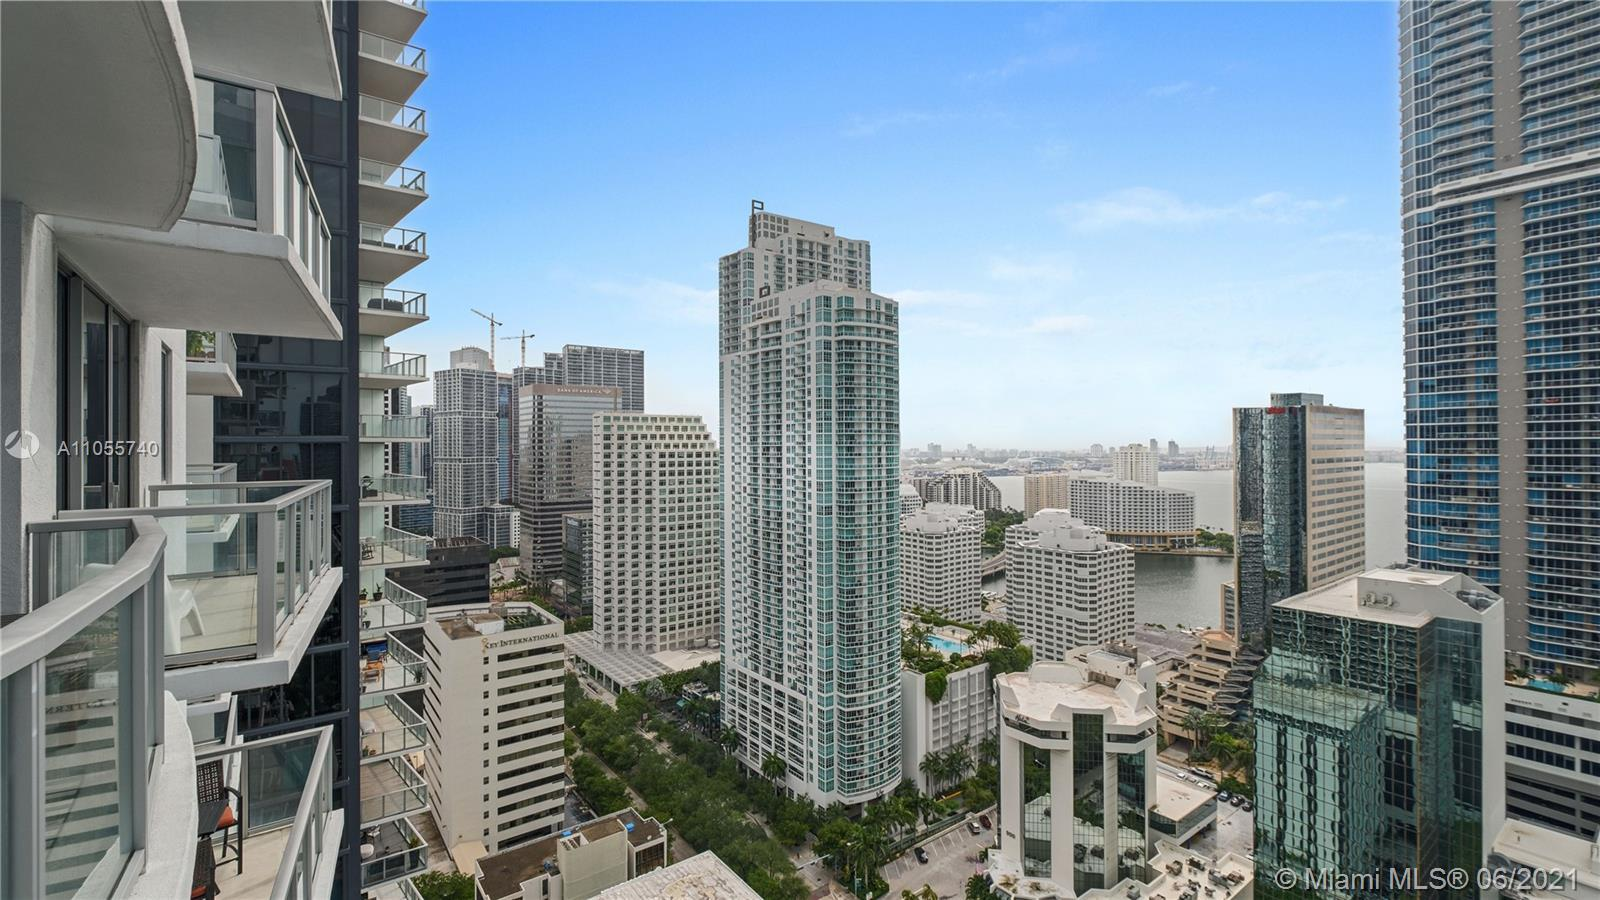 Location, Location, Location!  This condo is in the epicenter of Brickell - walking distance (steps)